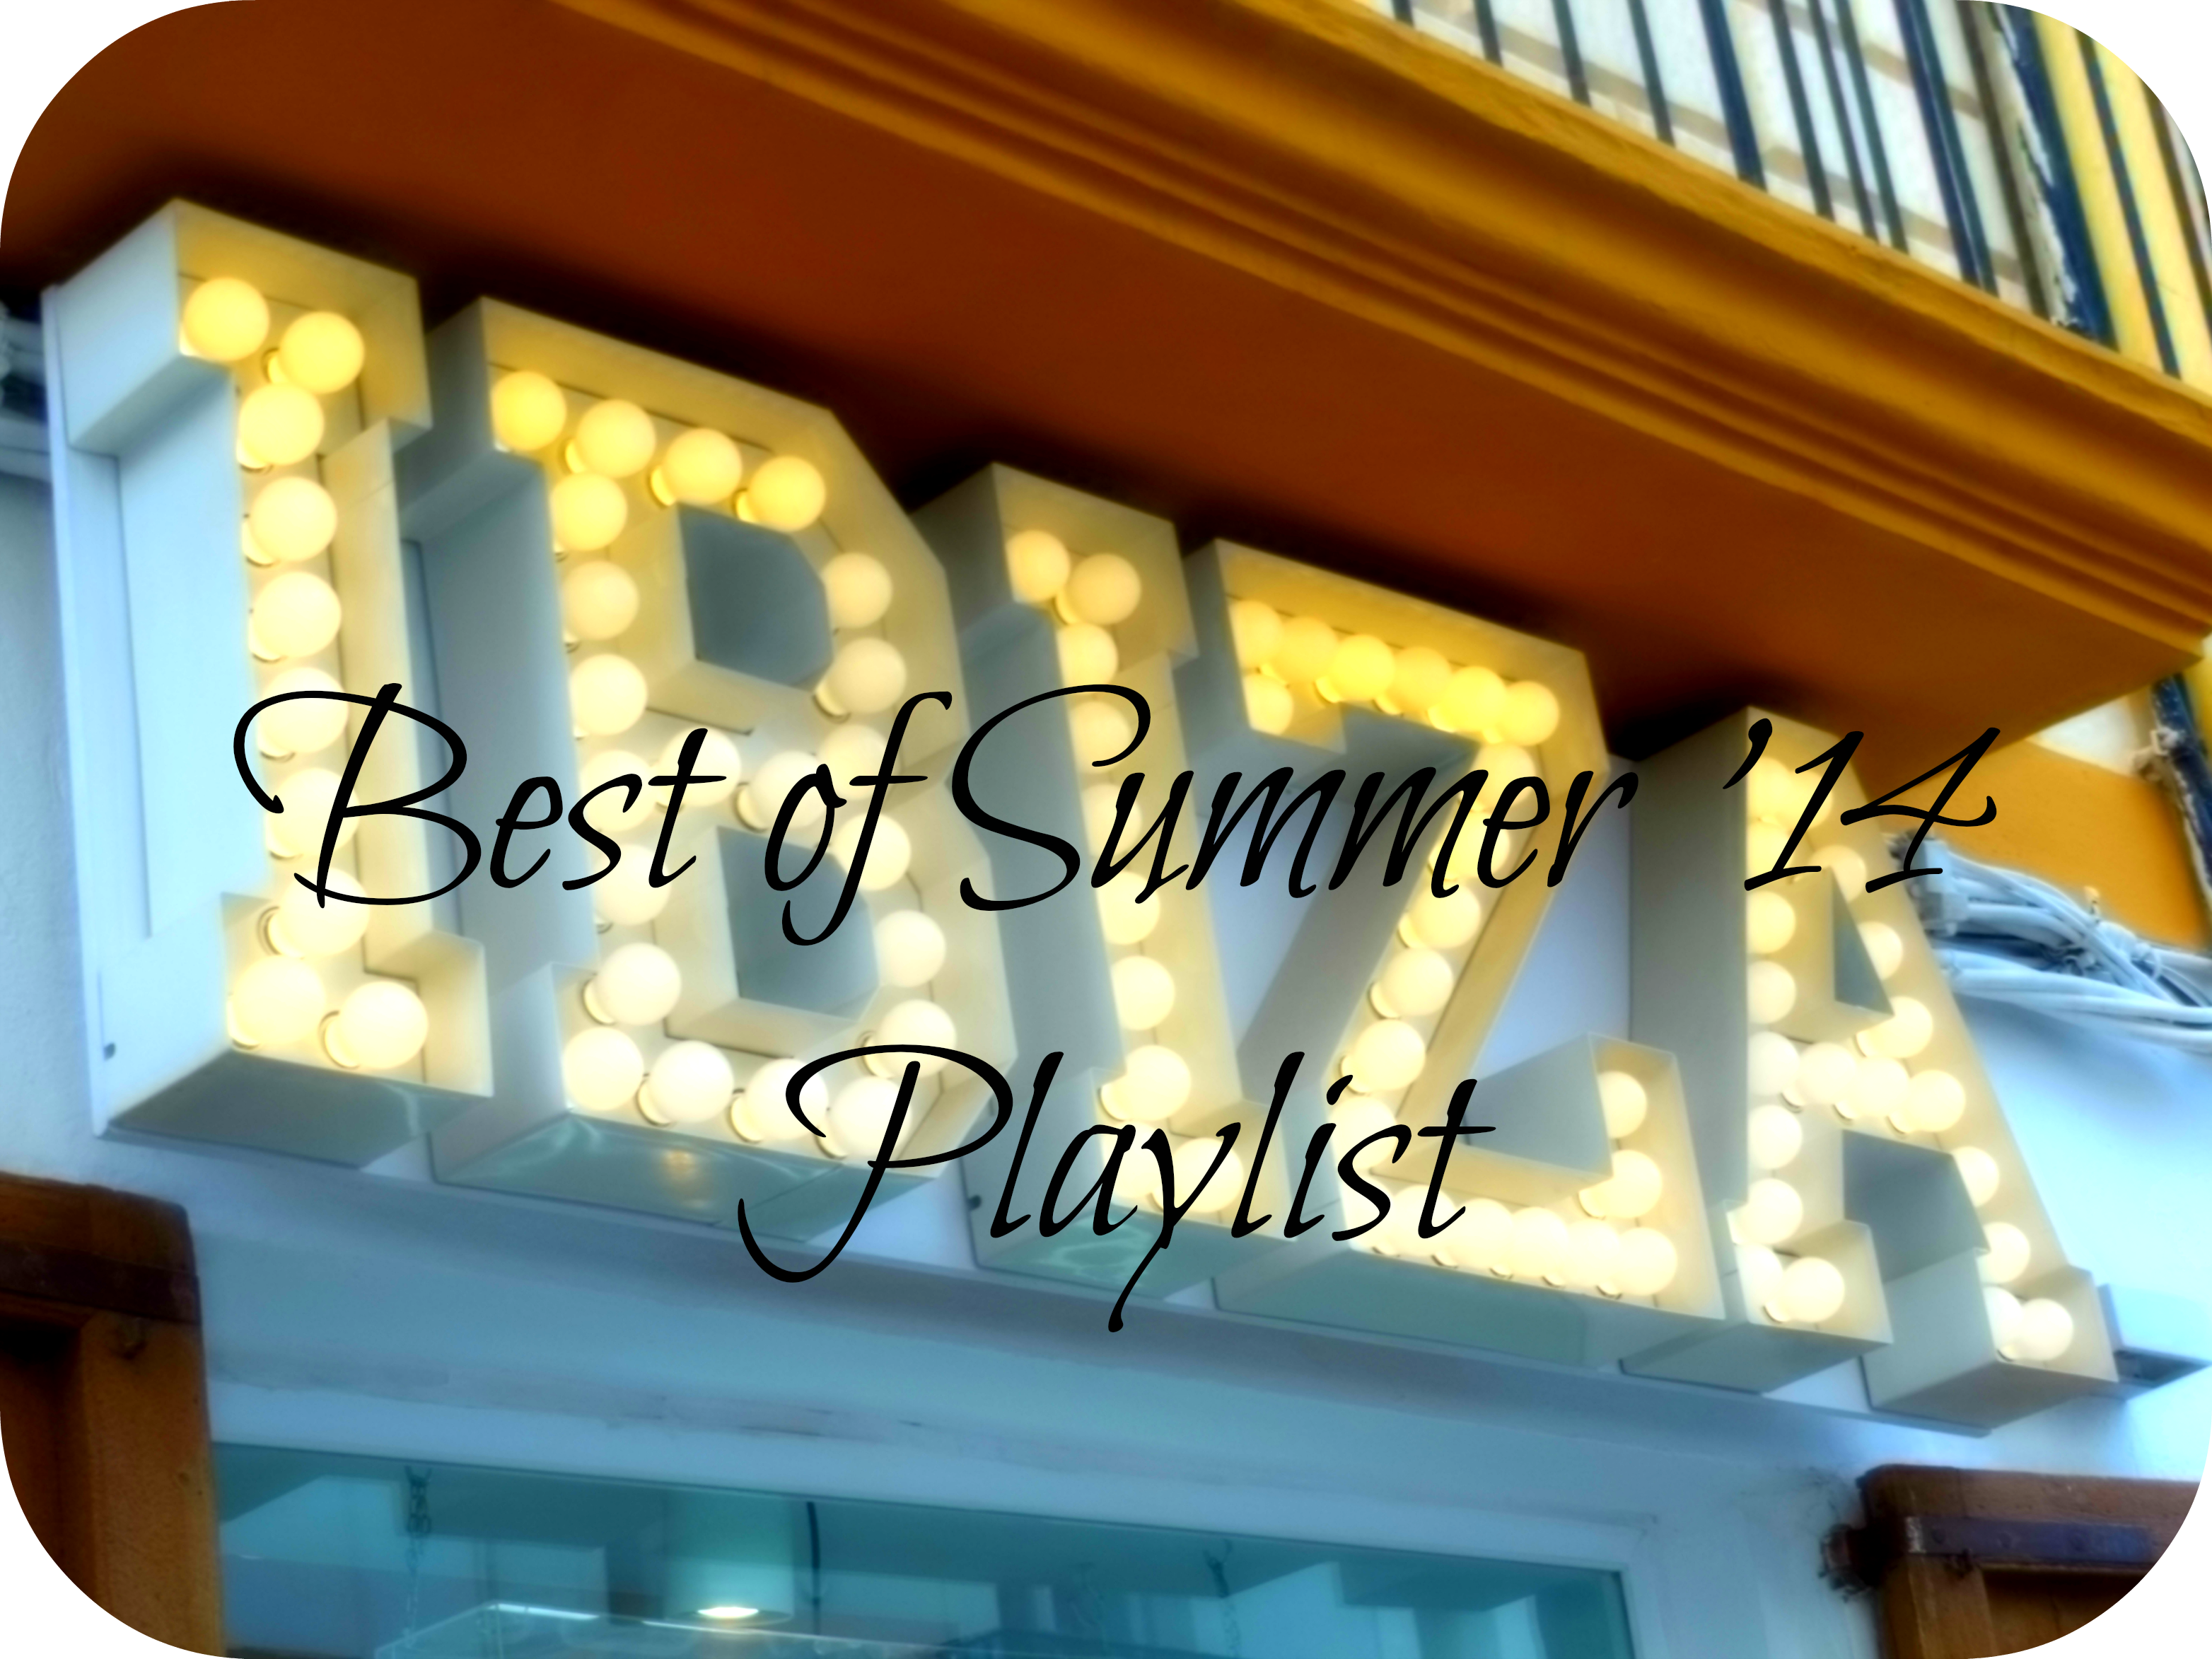 Summer 14 Playlist